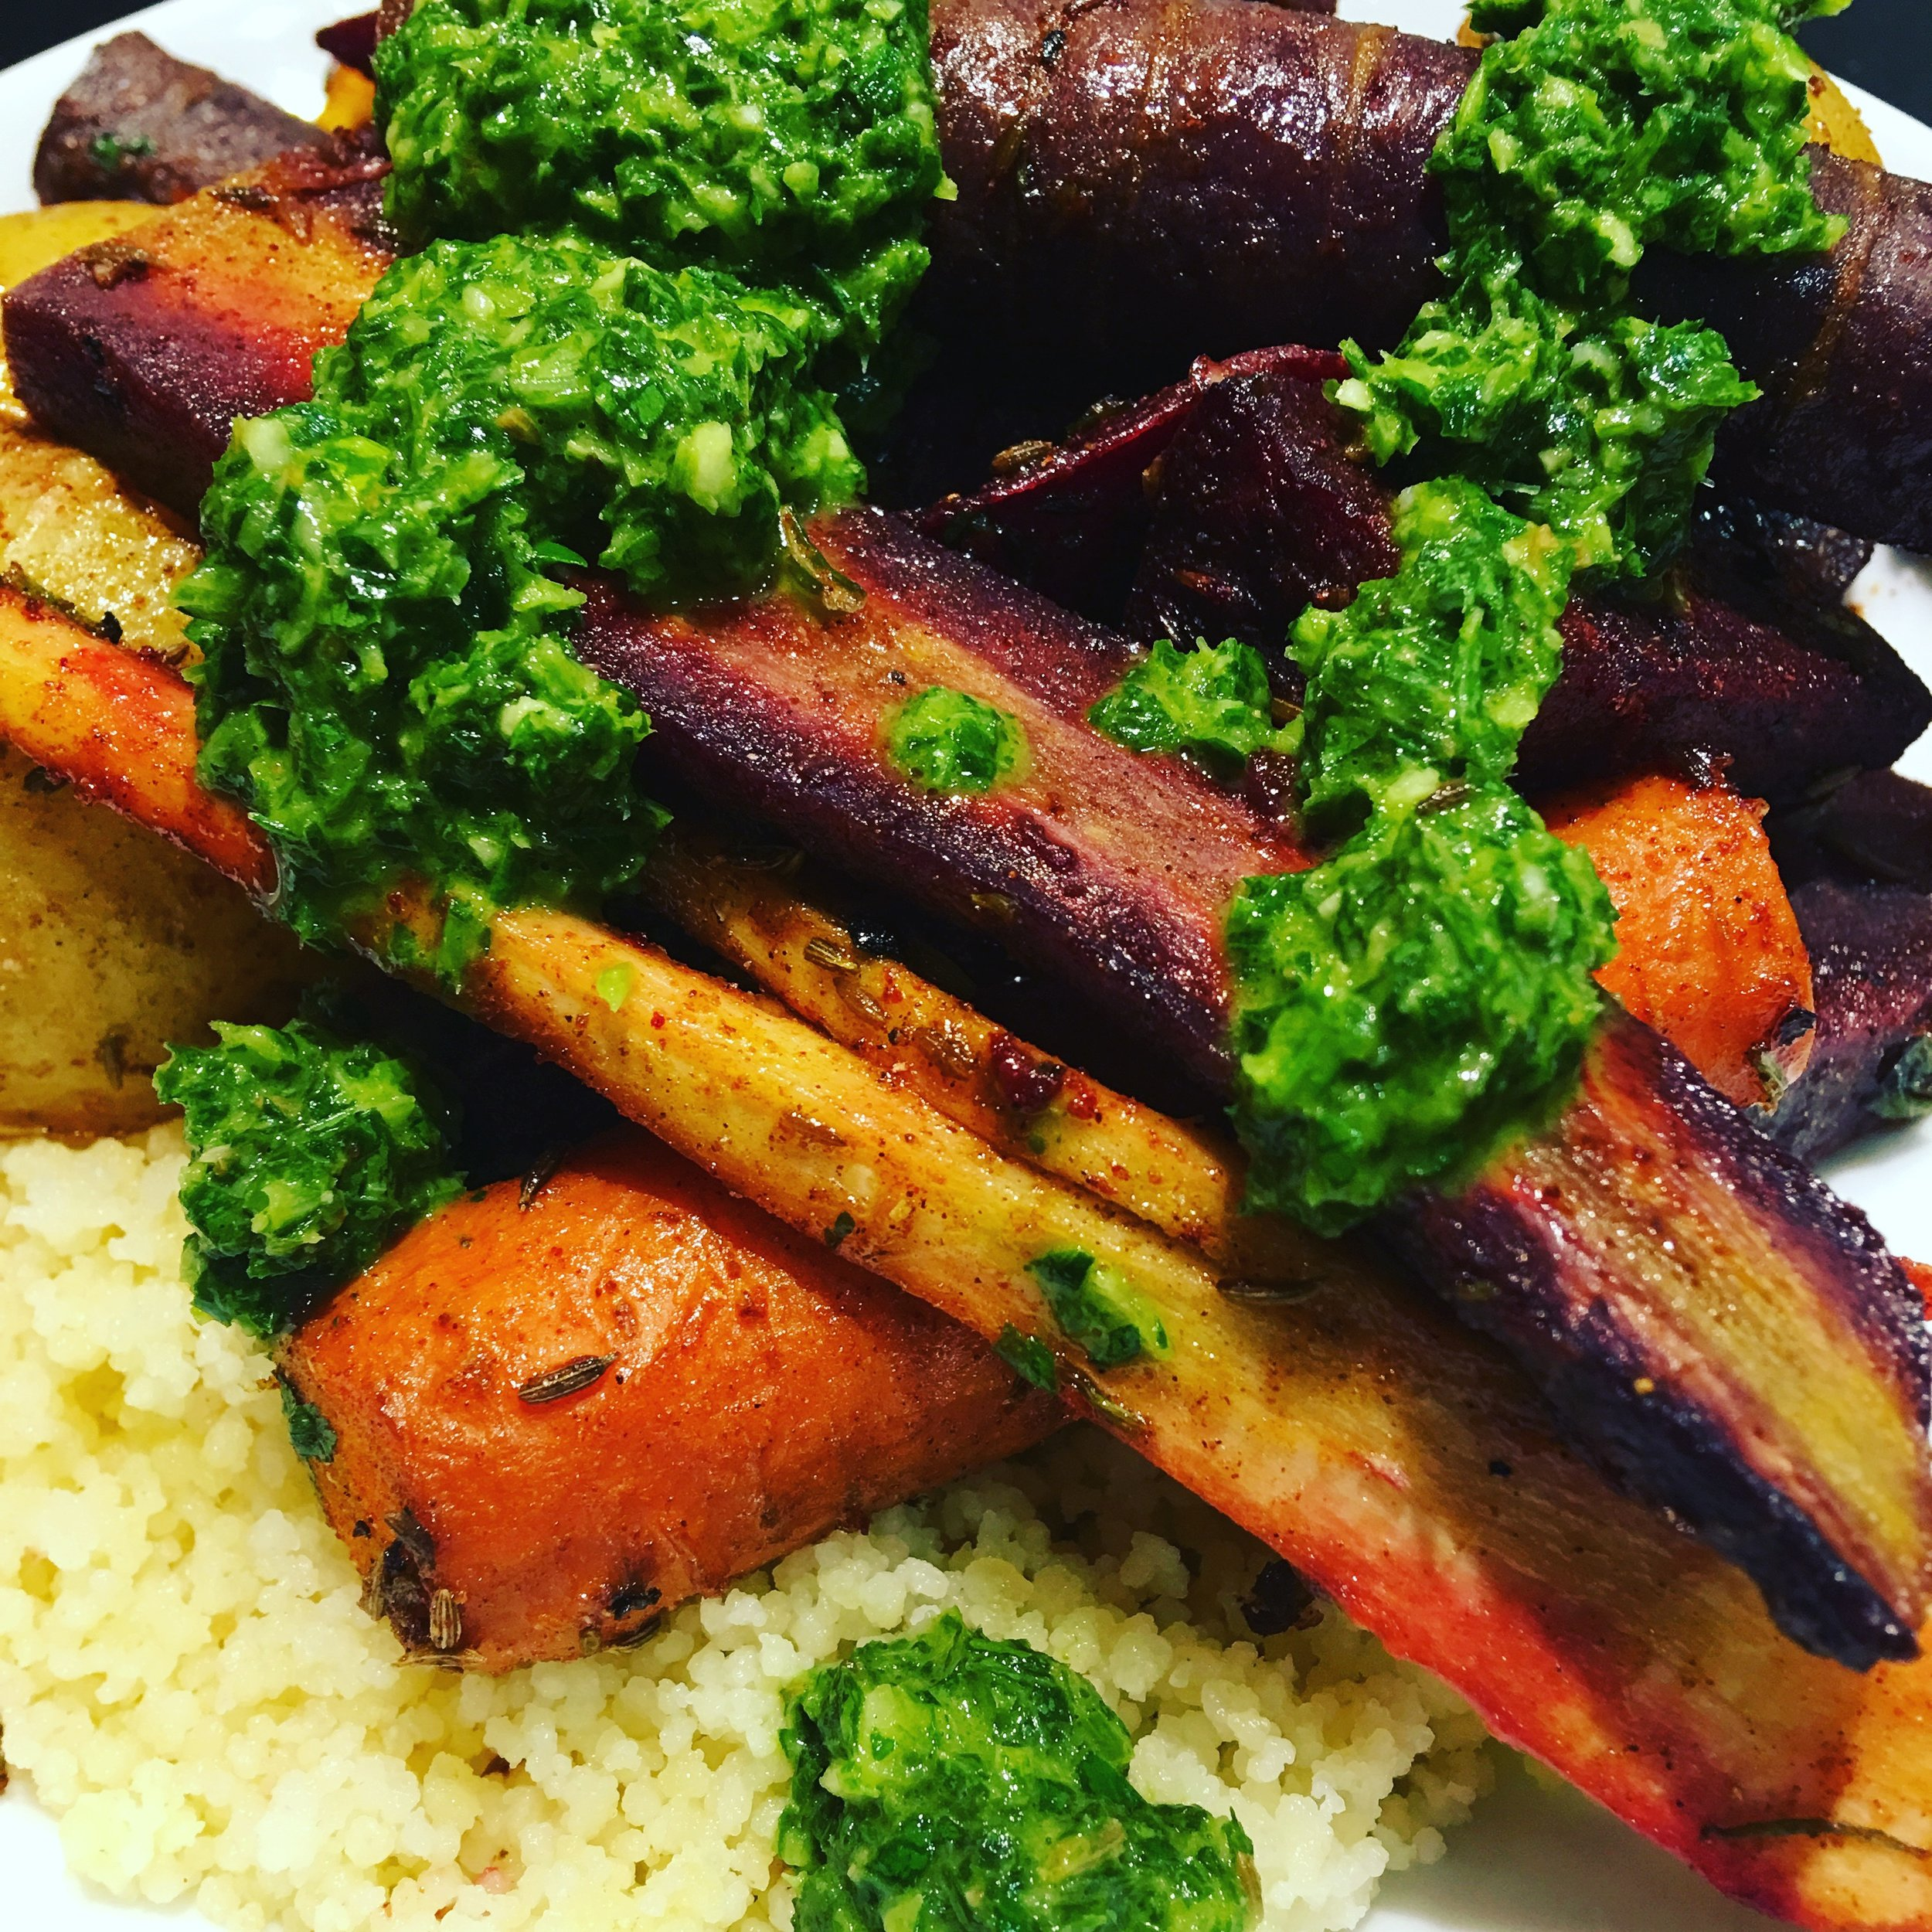 Spice-Roasted Vegetables With Chermoula  from the Sprouted Kitchen; I didn't have chickpeas, but it was still lovely, and I served it over buttered couscous